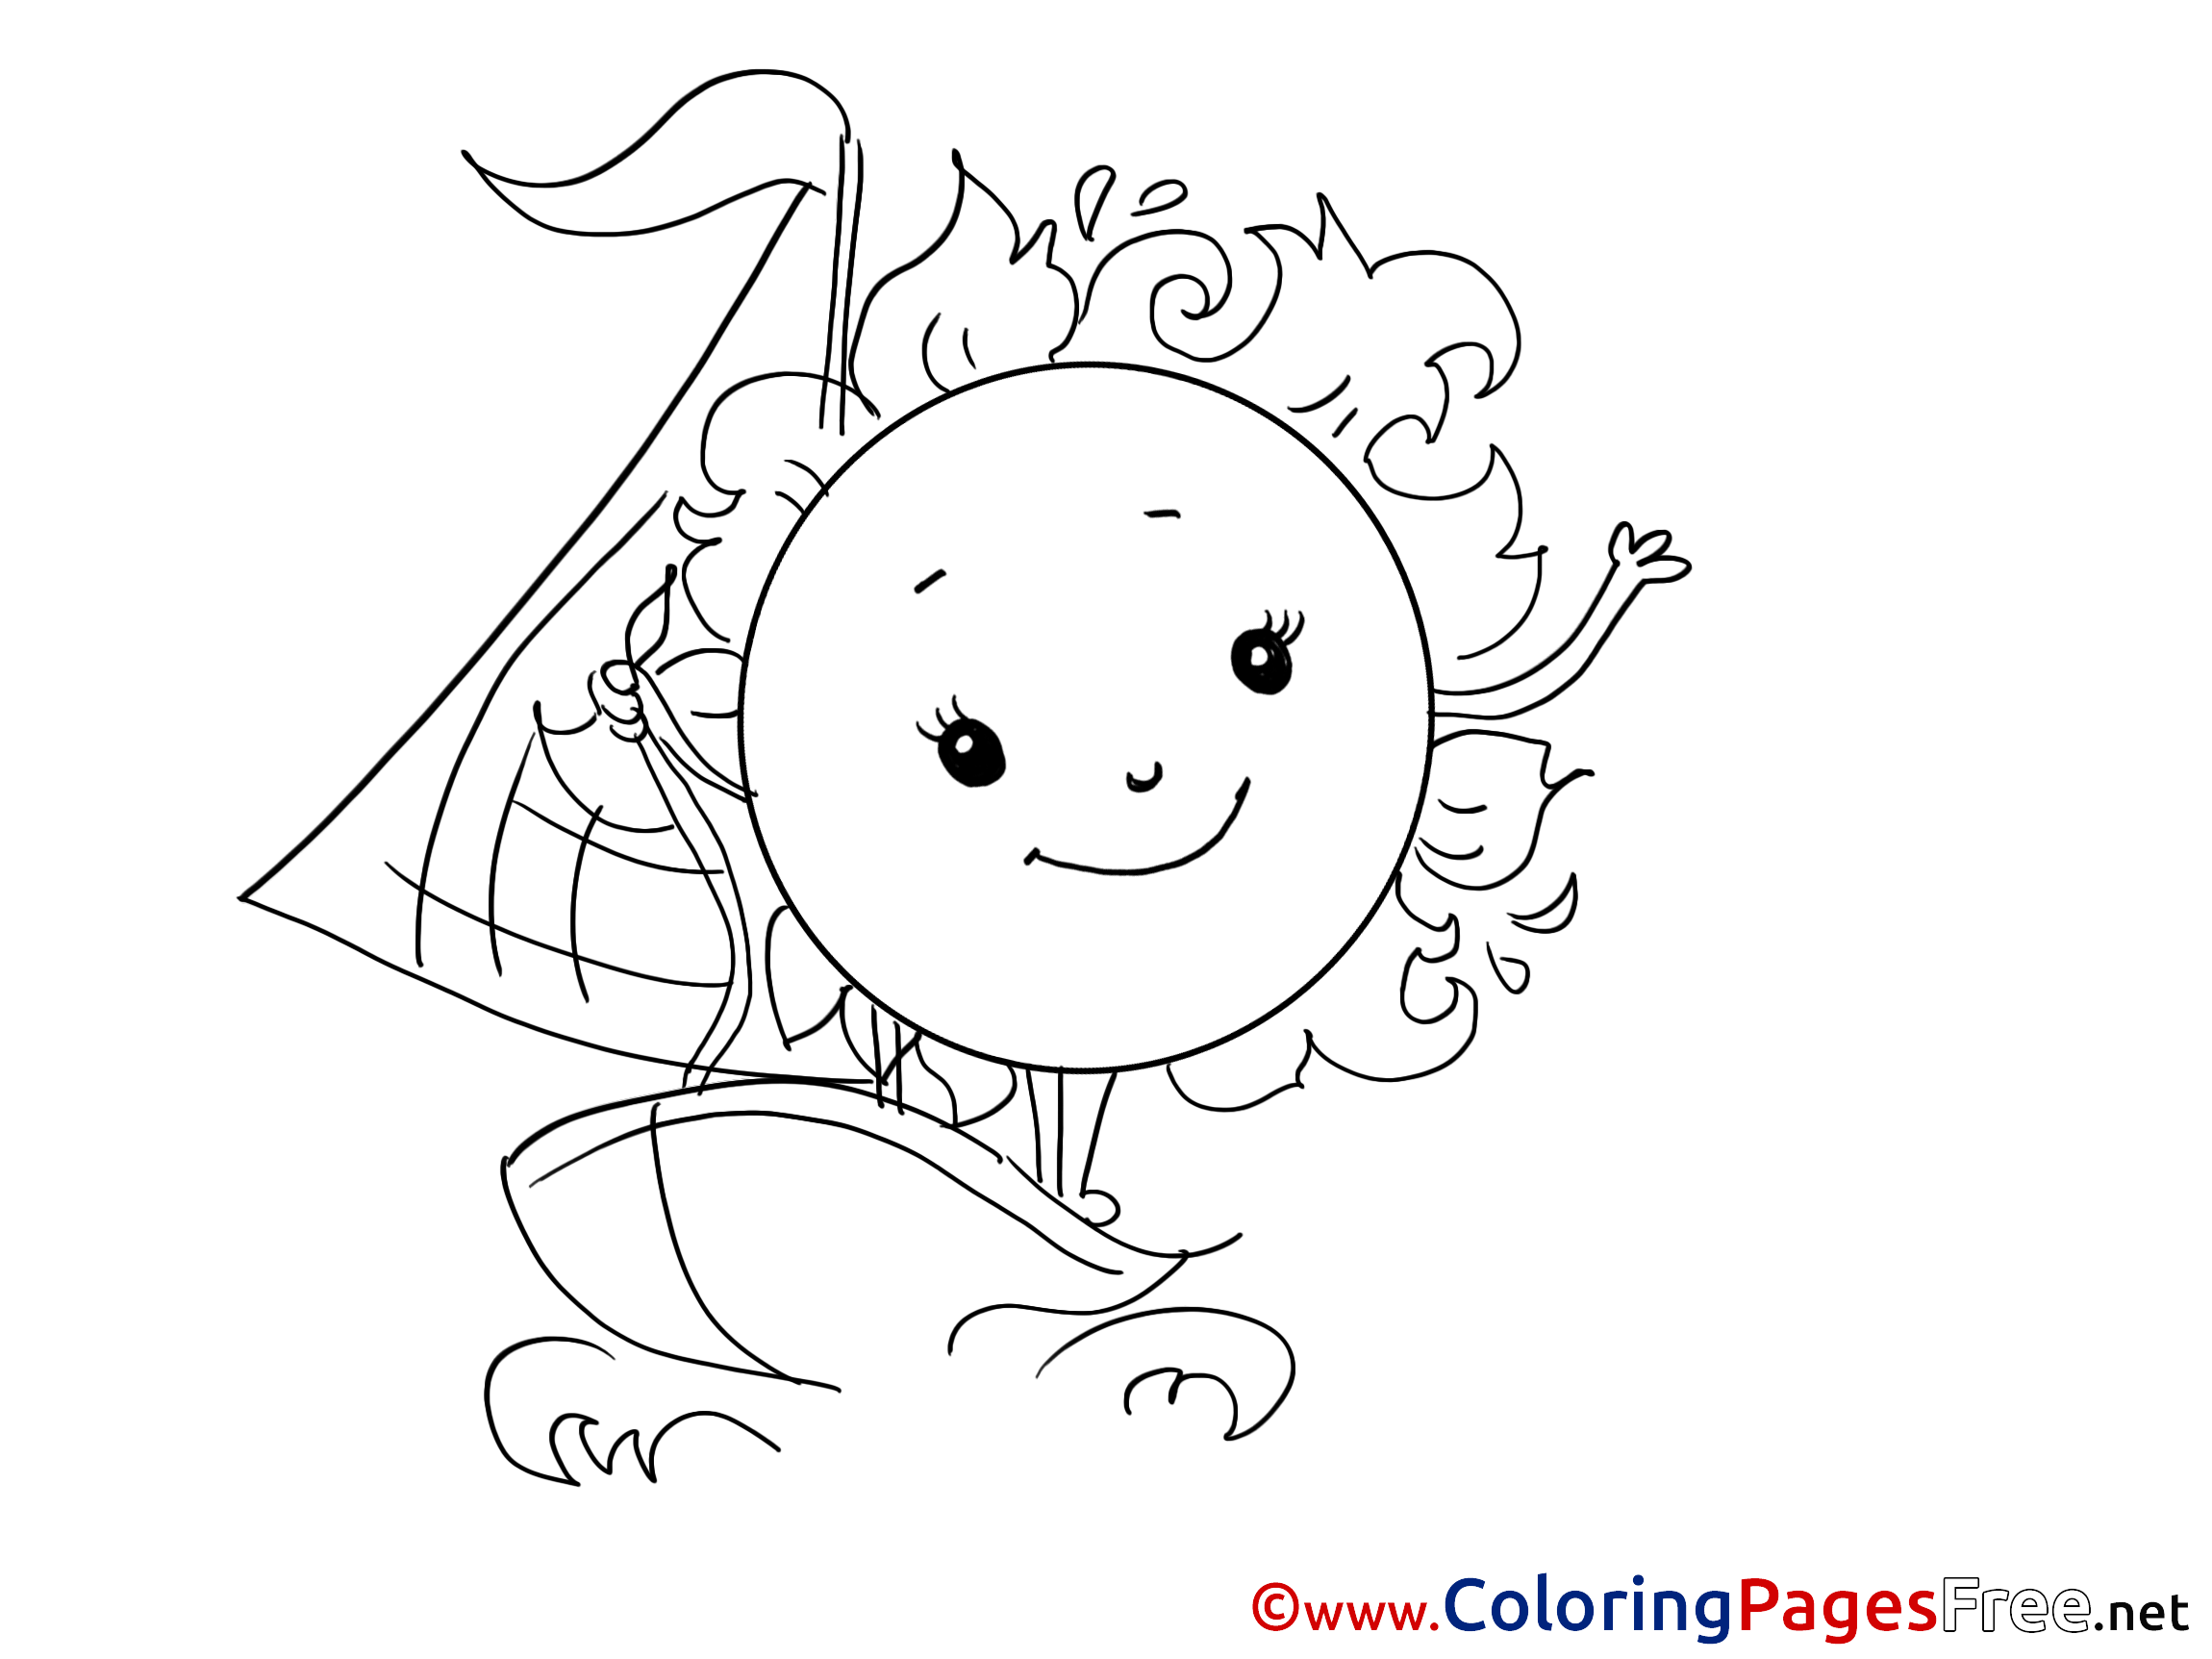 Boat Coloring Pages Free Teacher Worksheets - Coloring Pages | 1725x2300